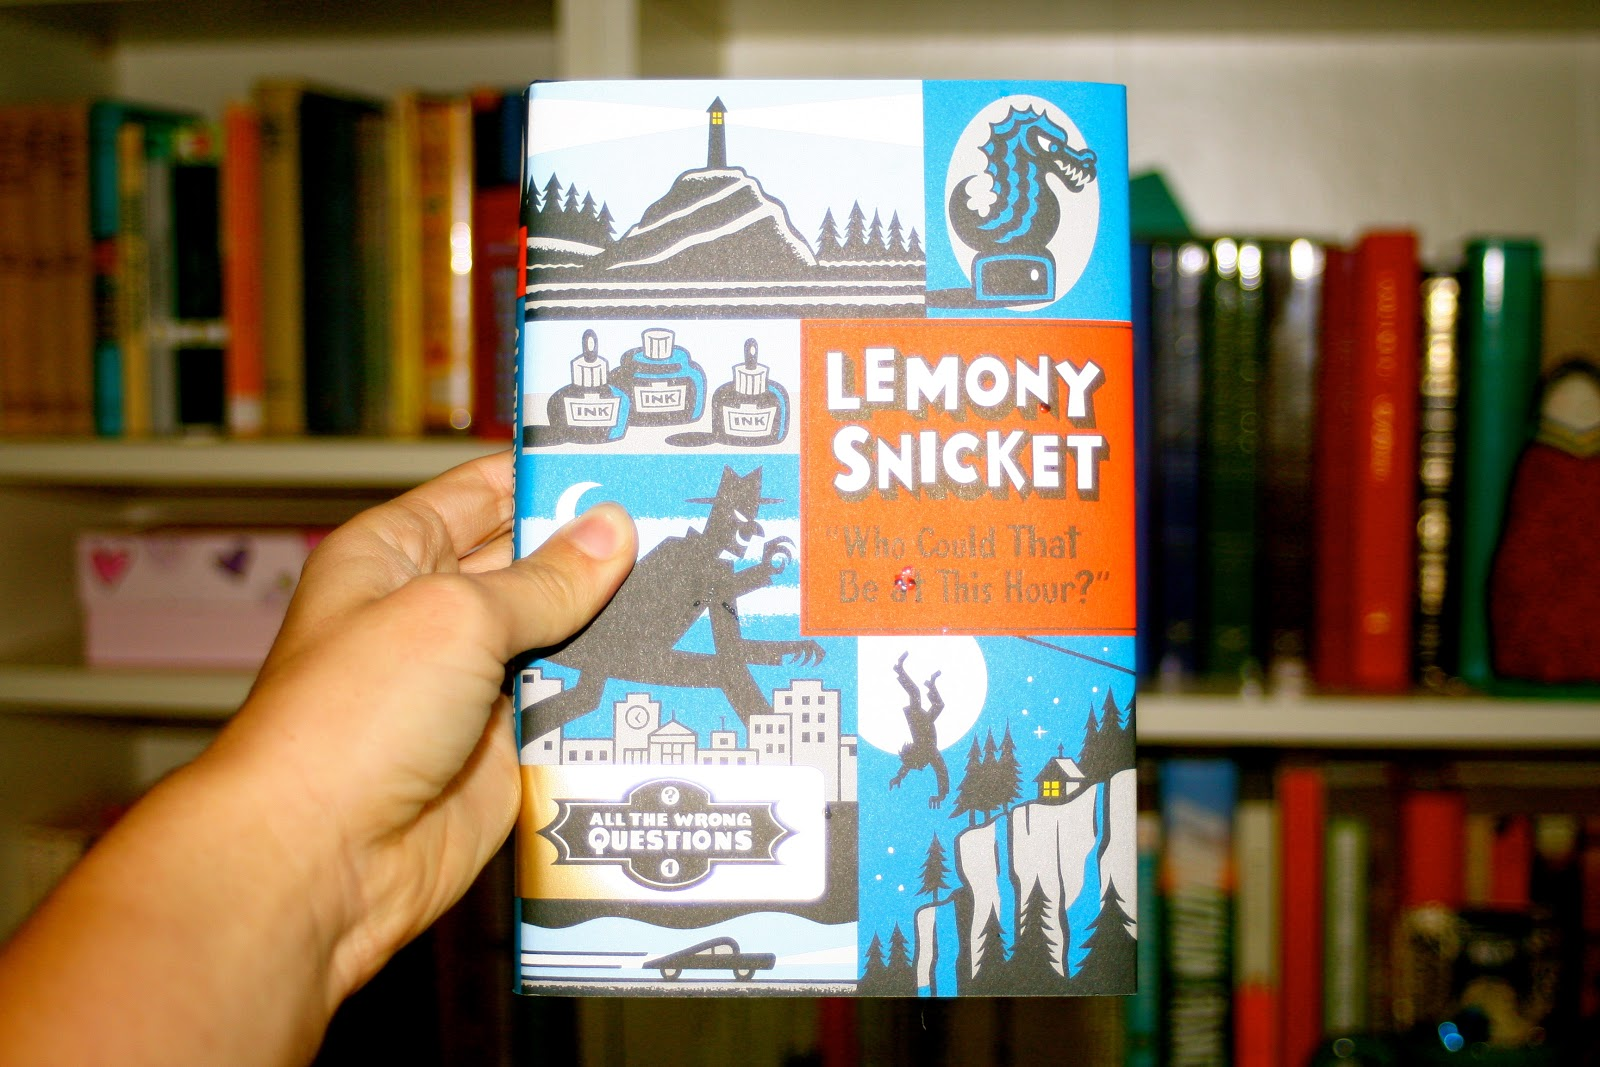 Although I Wasn't Going To Originally, I Ended Up Buying Who Could It Be At  This Hour (all The Wrong Questions) By Lemony Snicket The Book Is Part Of  A New